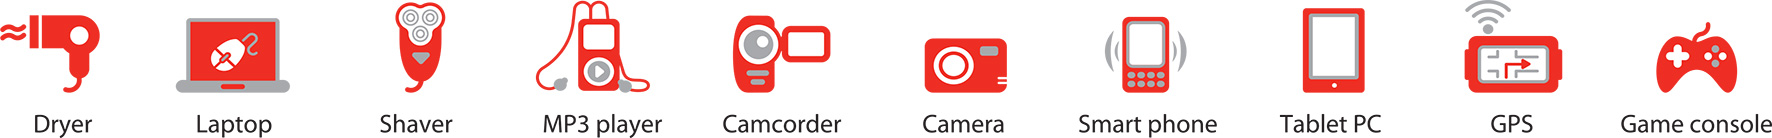 SWAMPCN33G-Pro+-Device-icons.jpg